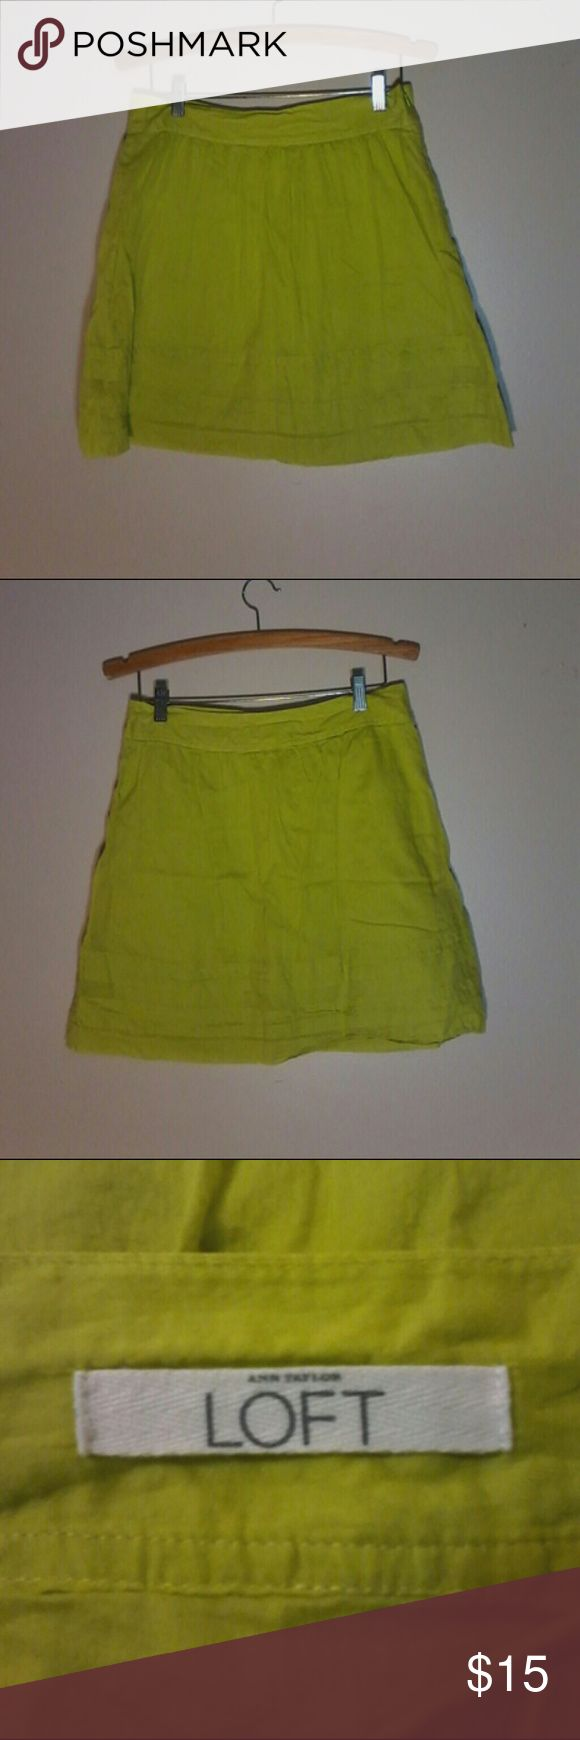 Anne Taylor Loft Lime Green Skirt Brand new without tags. Never been worn LOFT Skirts